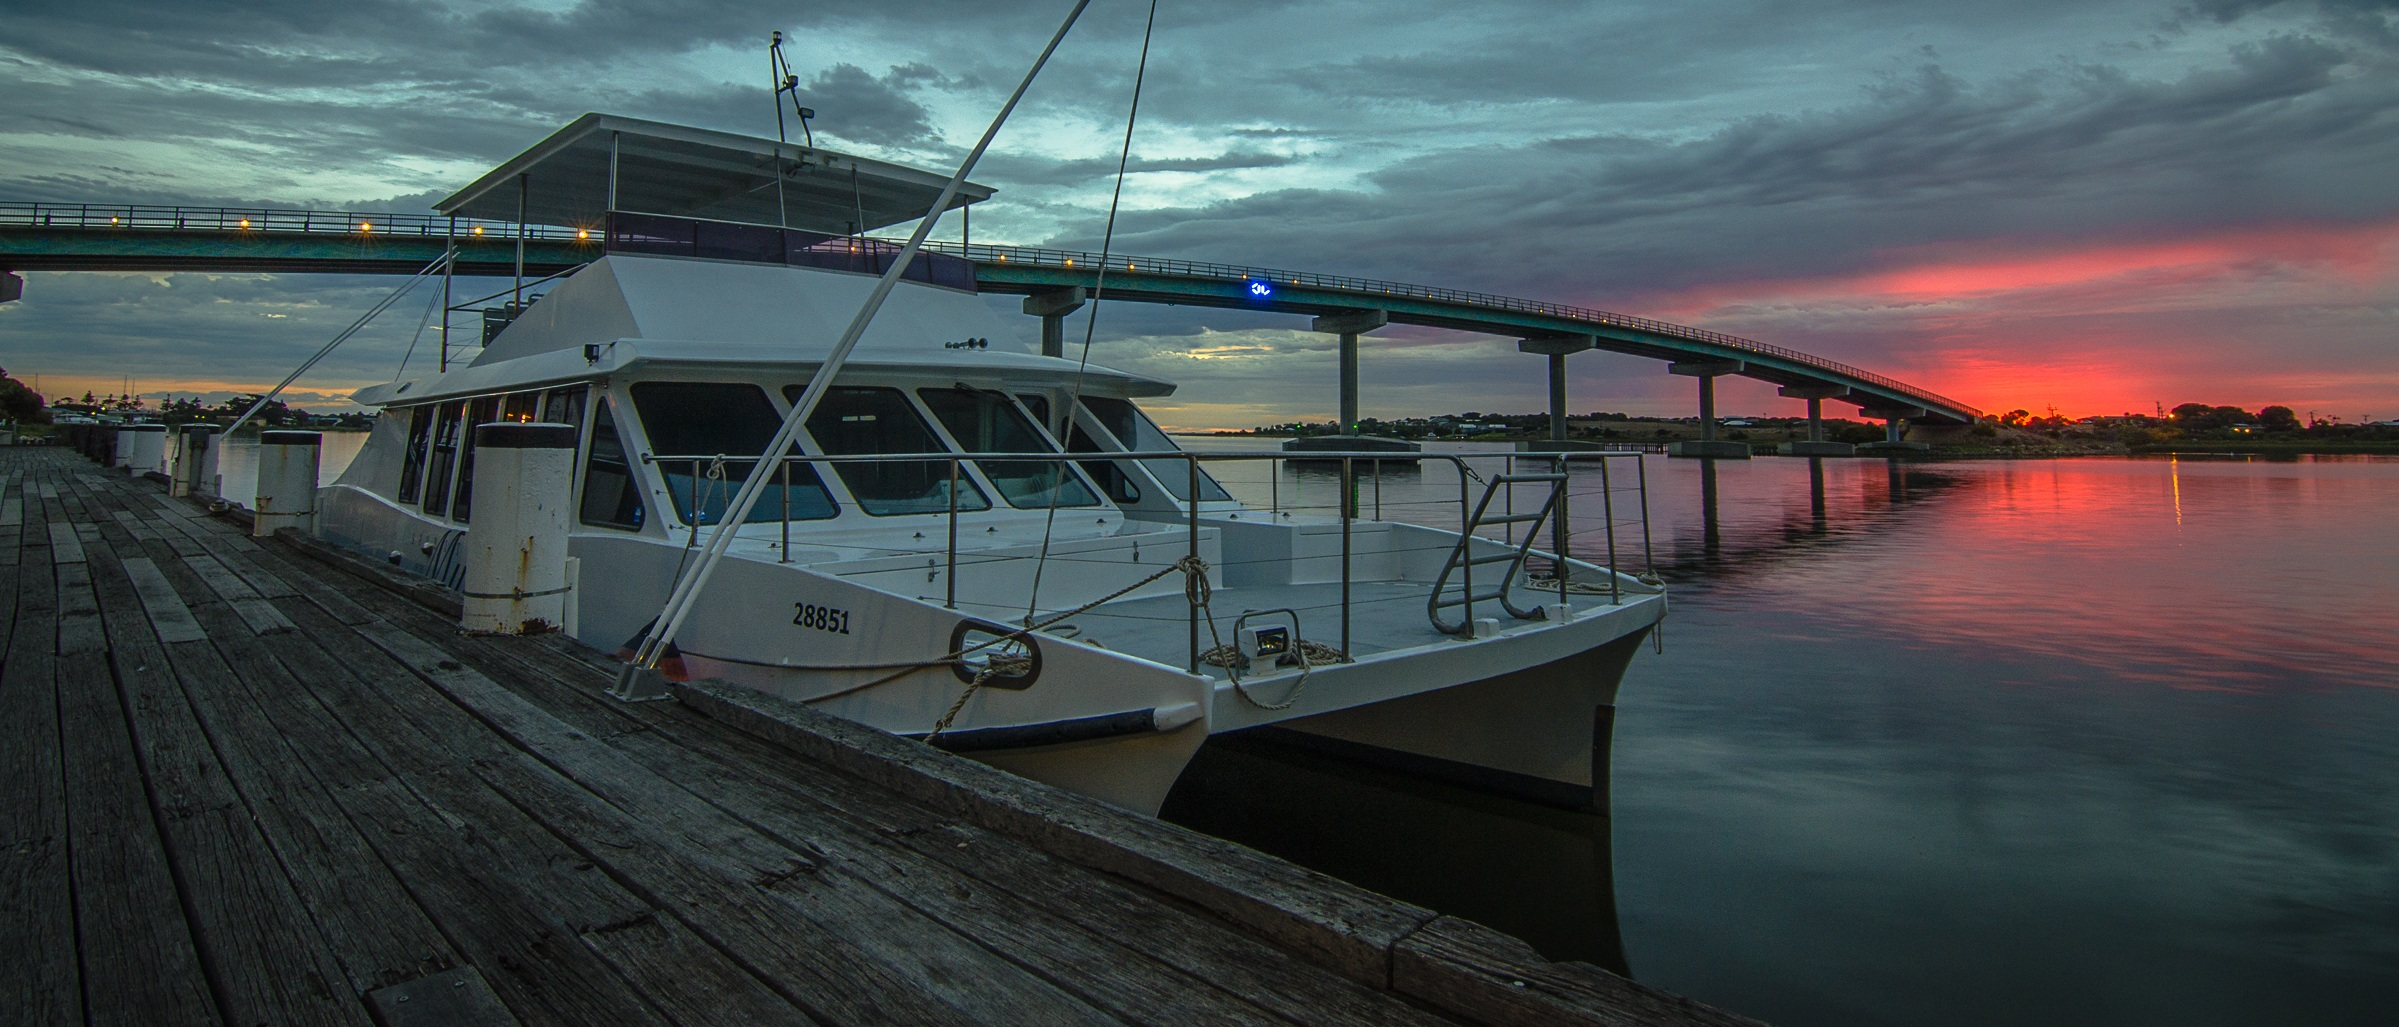 Specialty Cruises - Unique day tour offerings